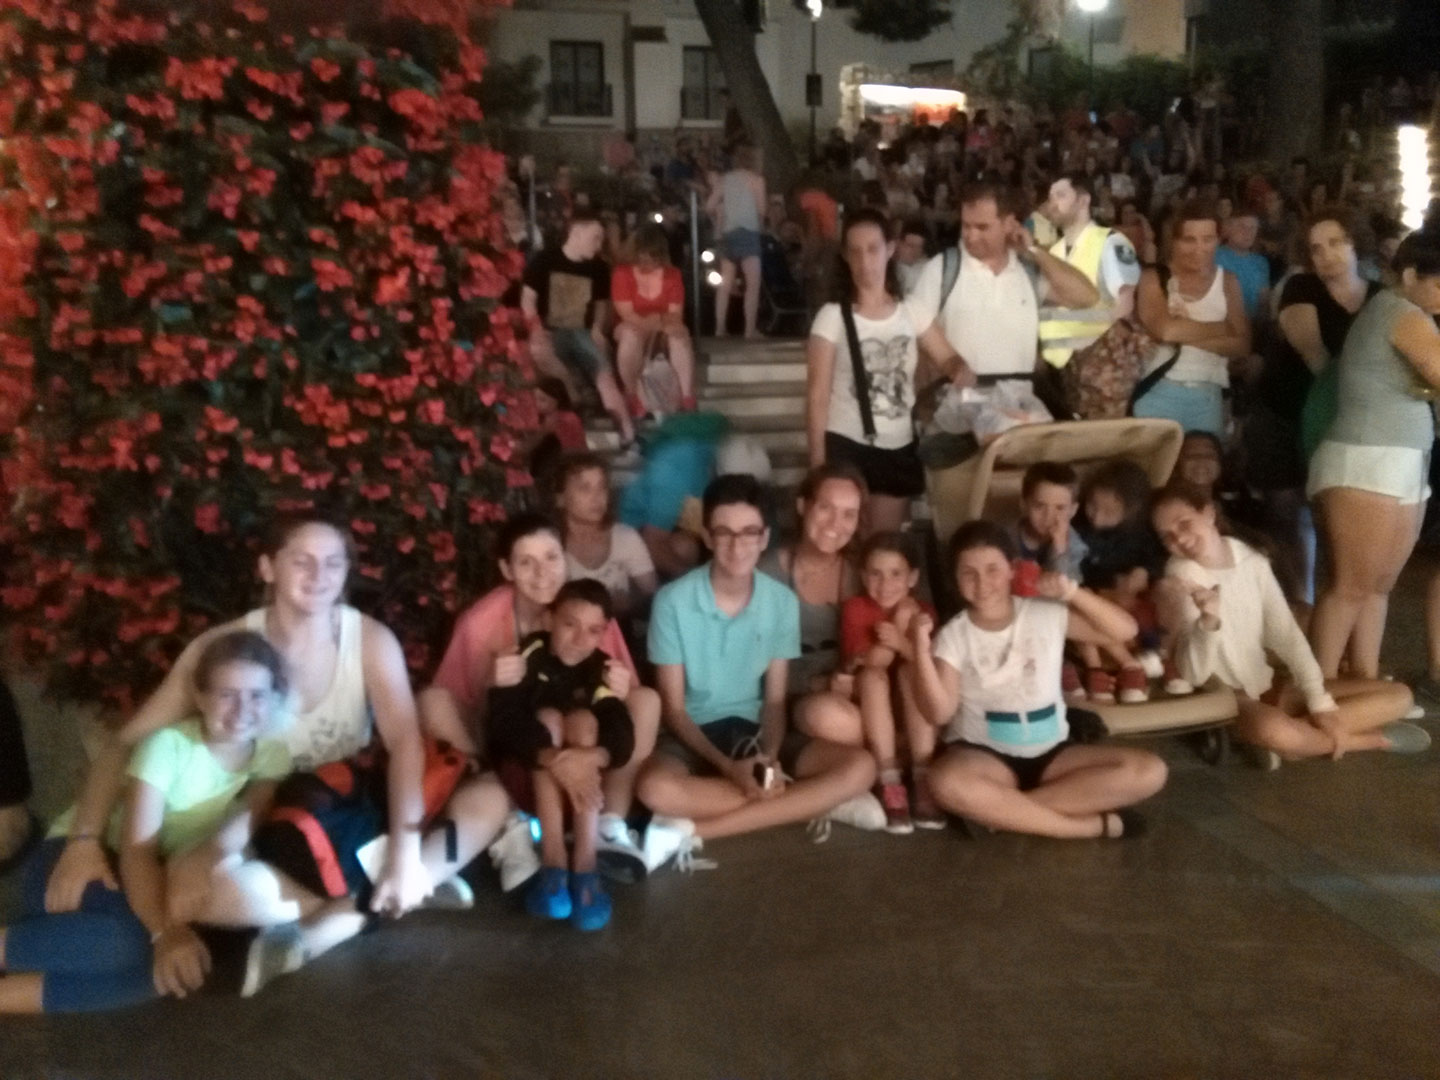 160702-portaventura-sequiol-2-233009